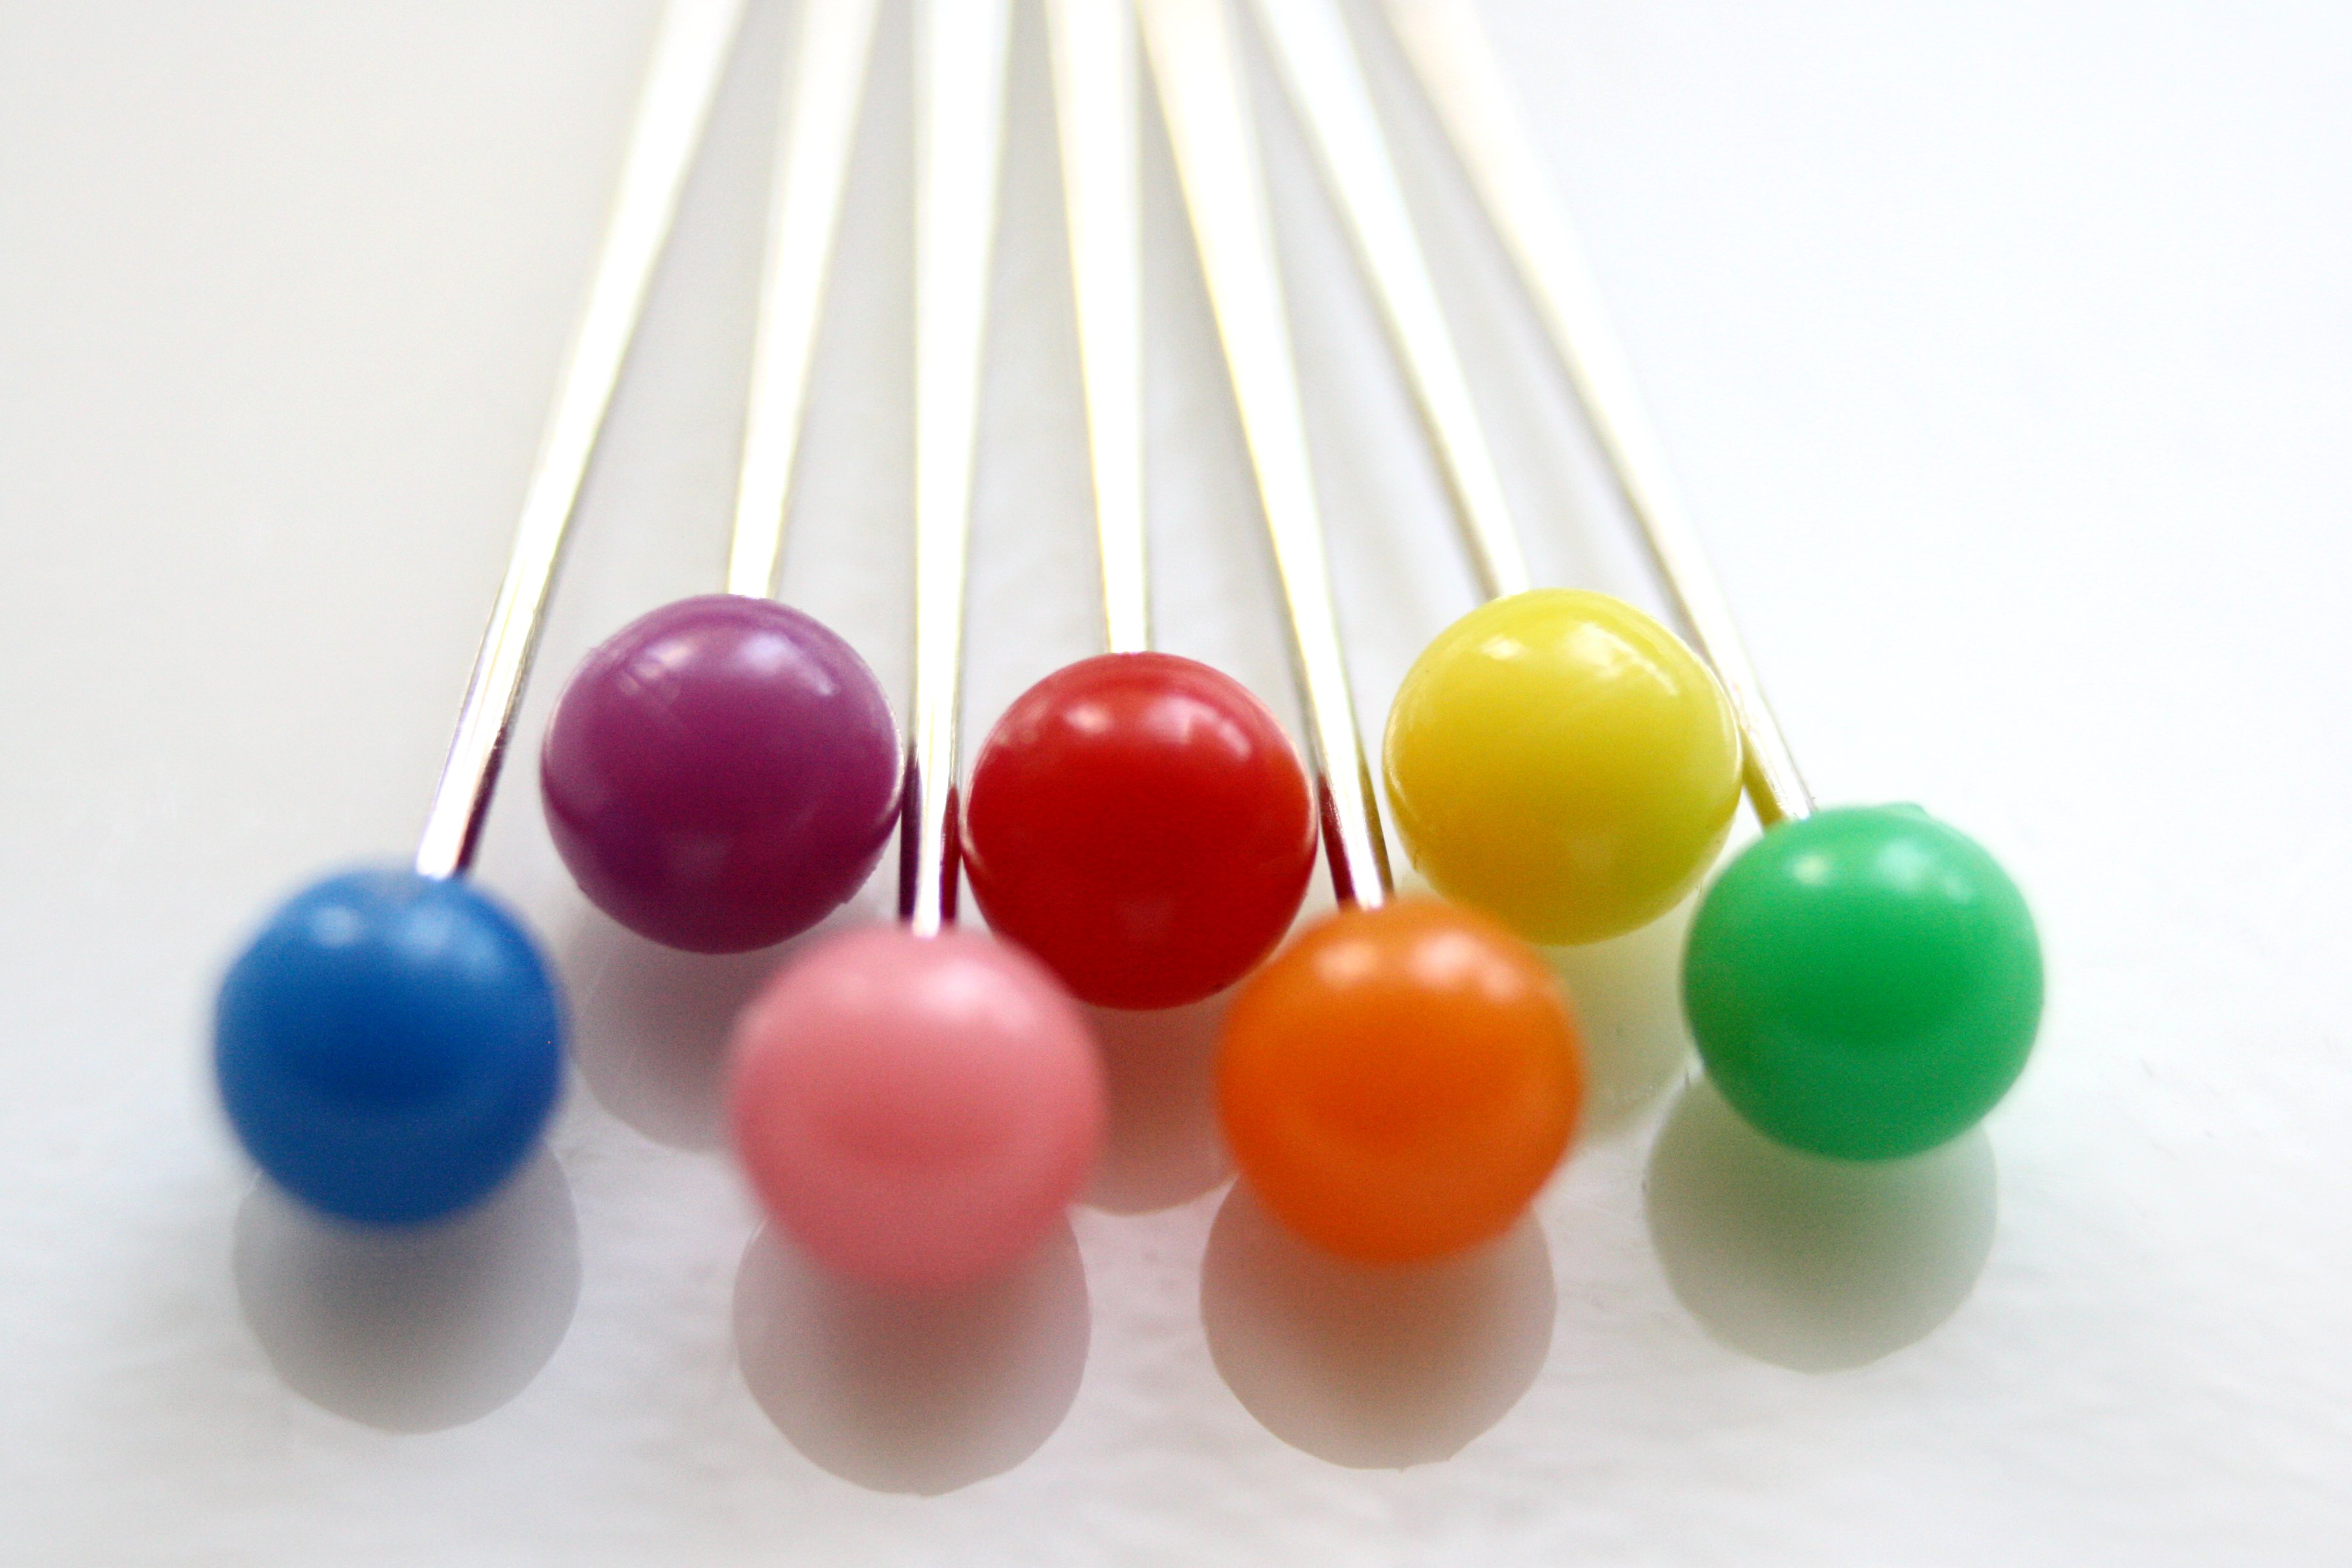 Rainbow Colored Sewing Straight Pins Macro Picture Free